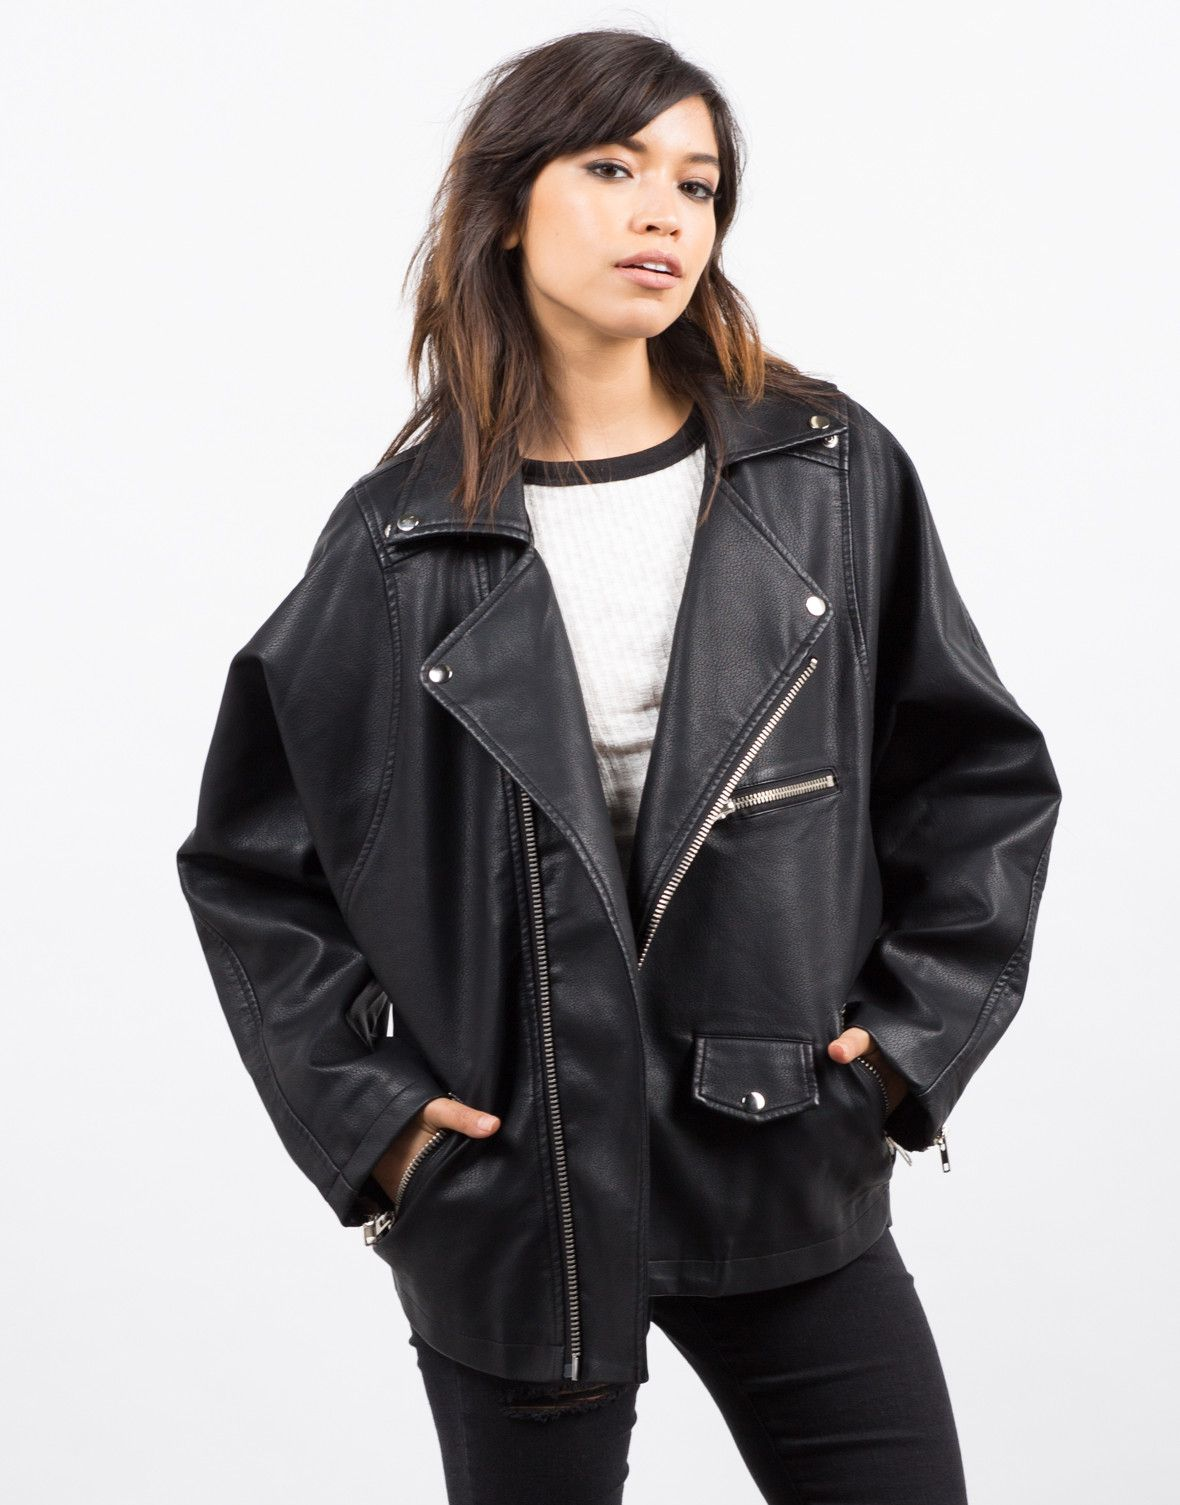 Oversized Leather Jacket (With images) Leather jacket